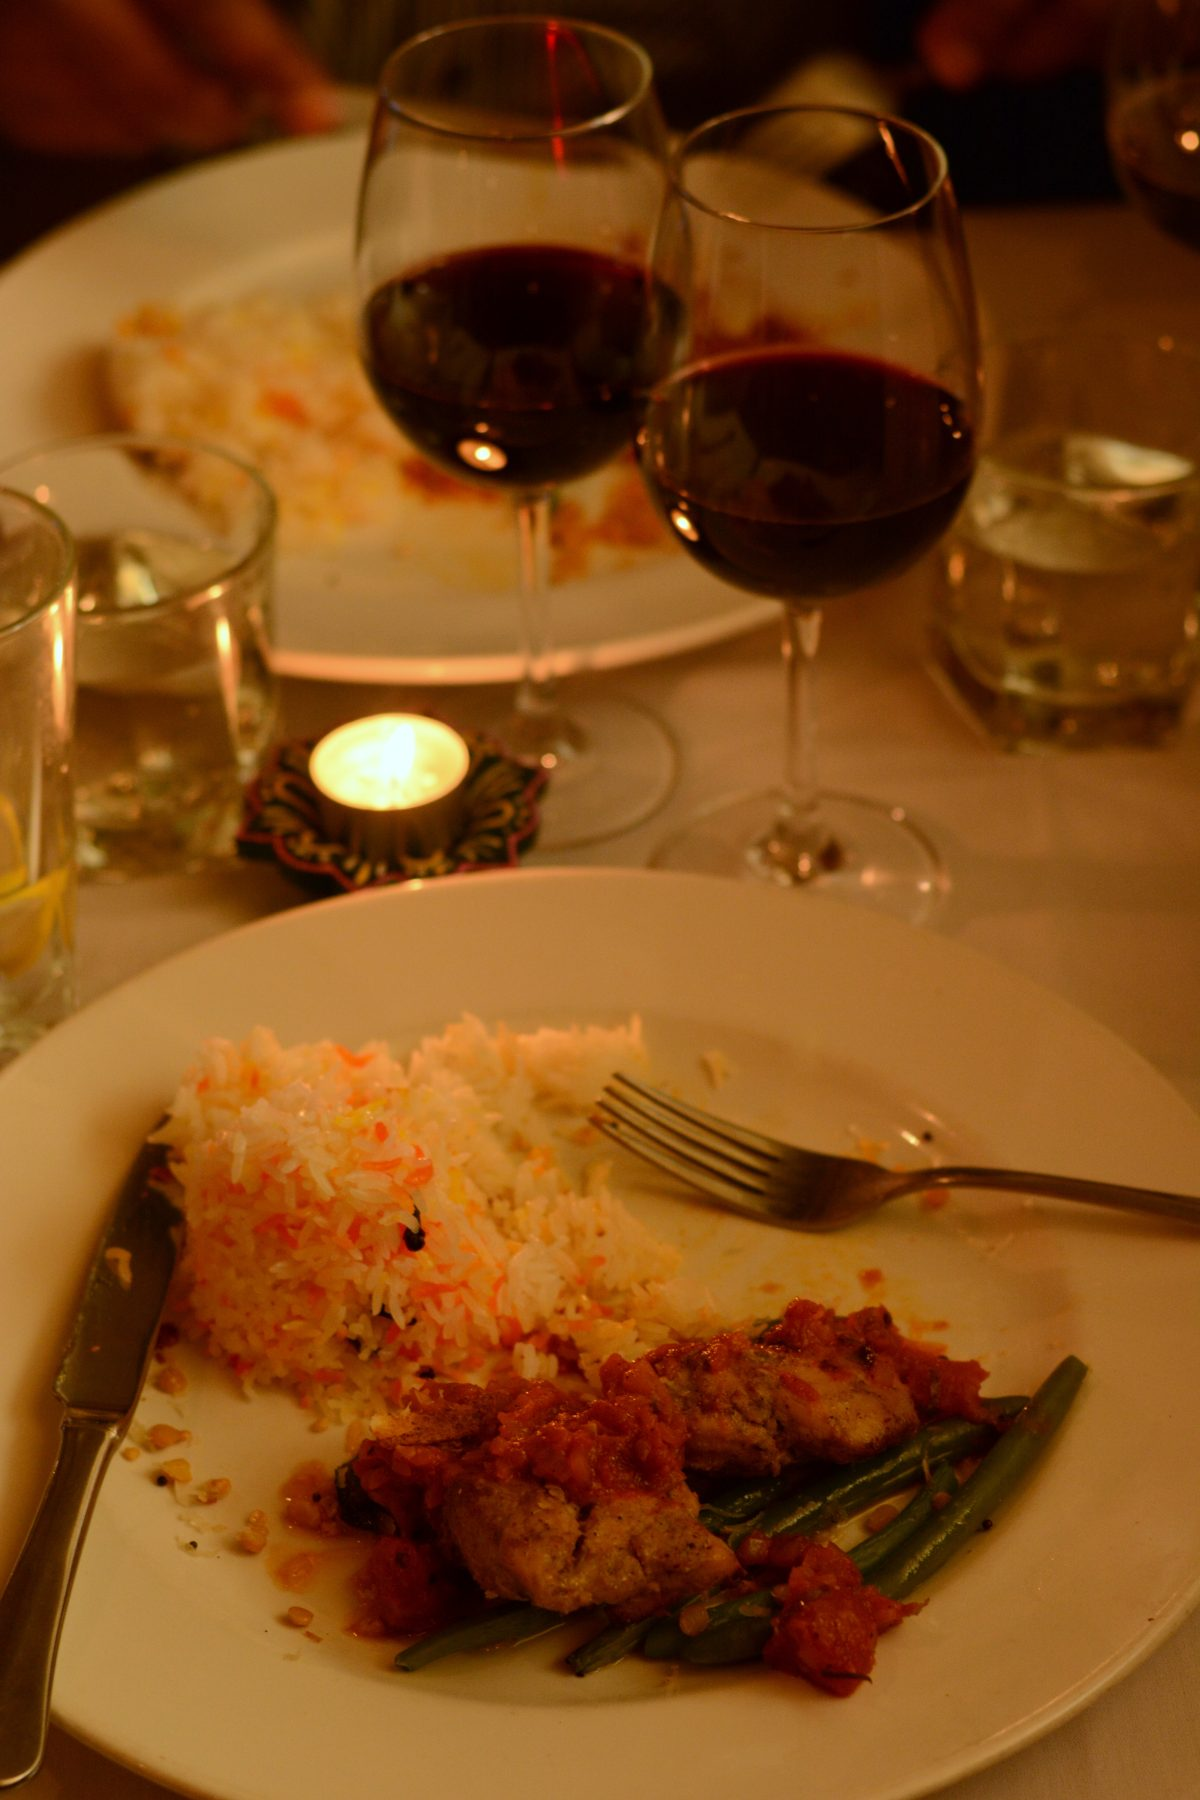 Kozhi Vartha or Oven Roasted Chicken with Coconut served with Hyderabadi Pilaf and Long Beans Poriyal paired with a 2013 Avani Syrah